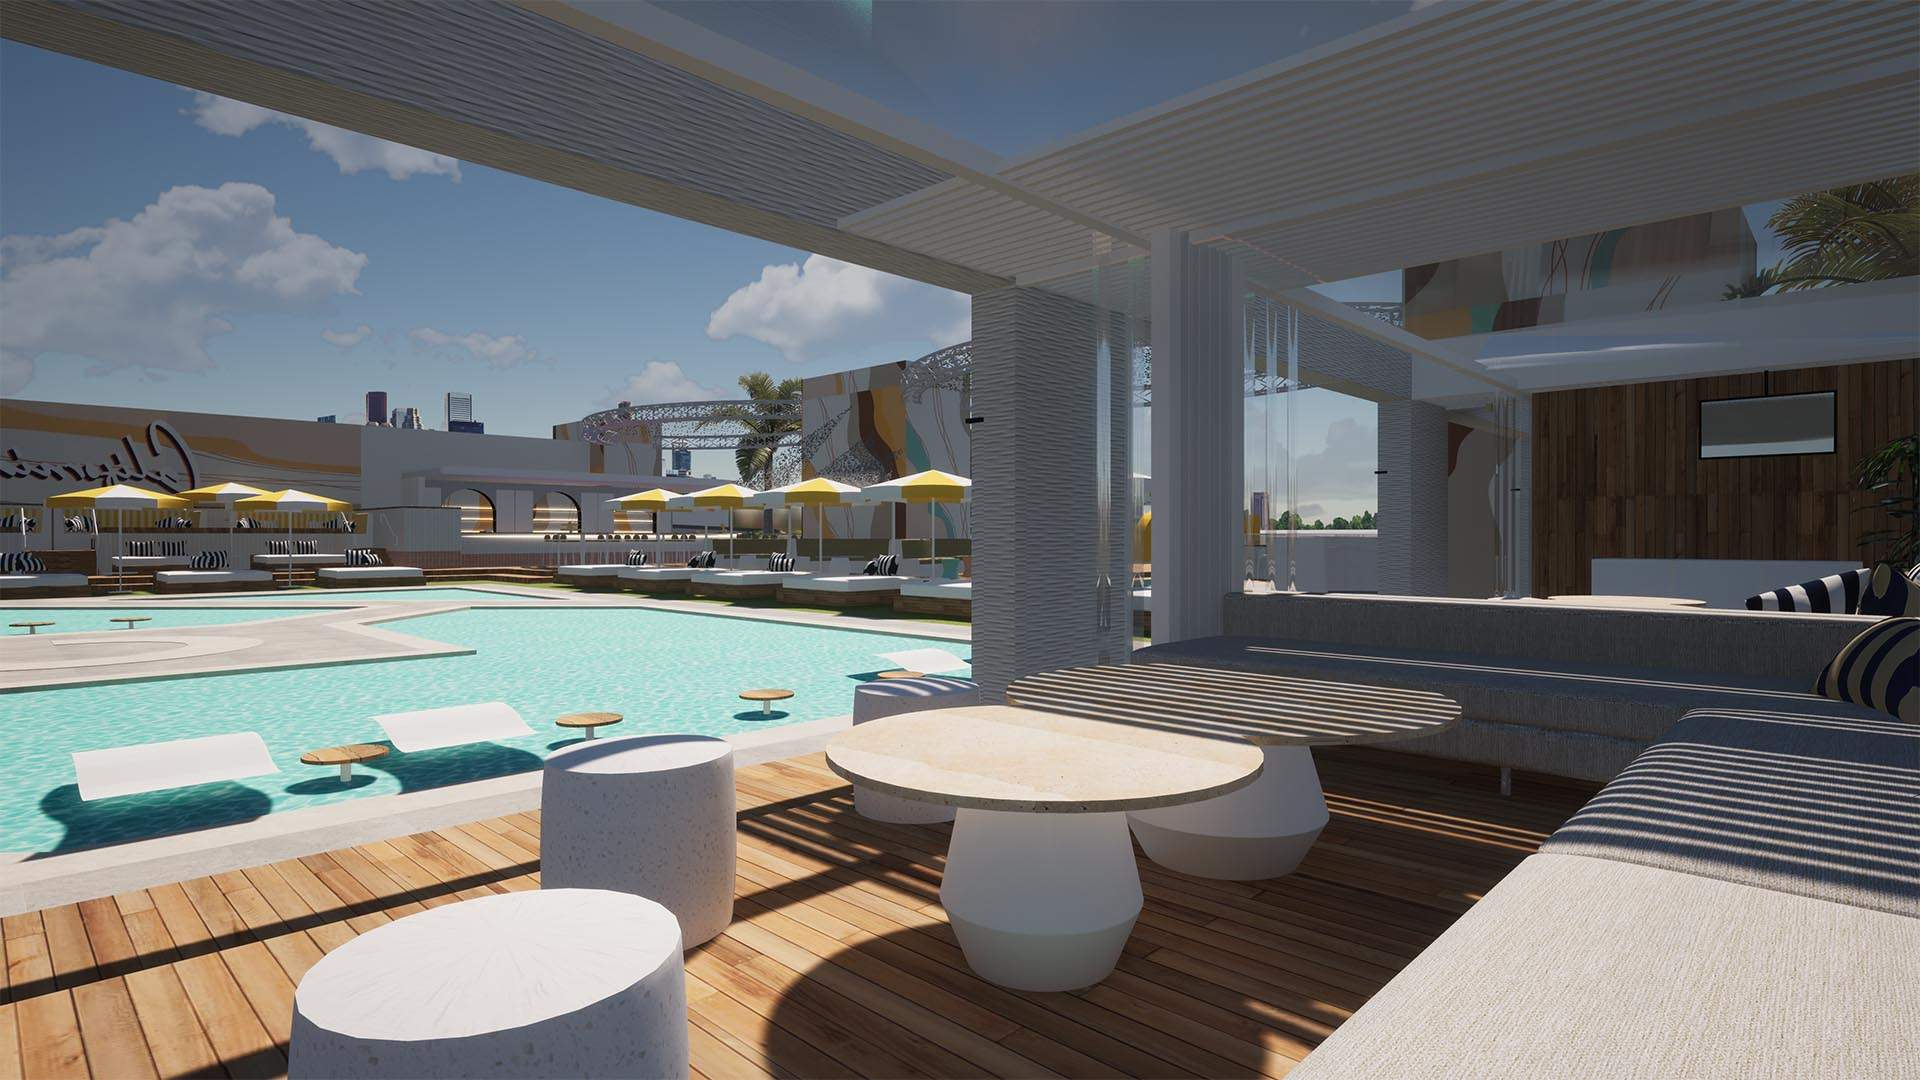 Cali Beach Club's Cabana-Filled Oceanside Precinct Will Open on a Gold Coast Rooftop in August